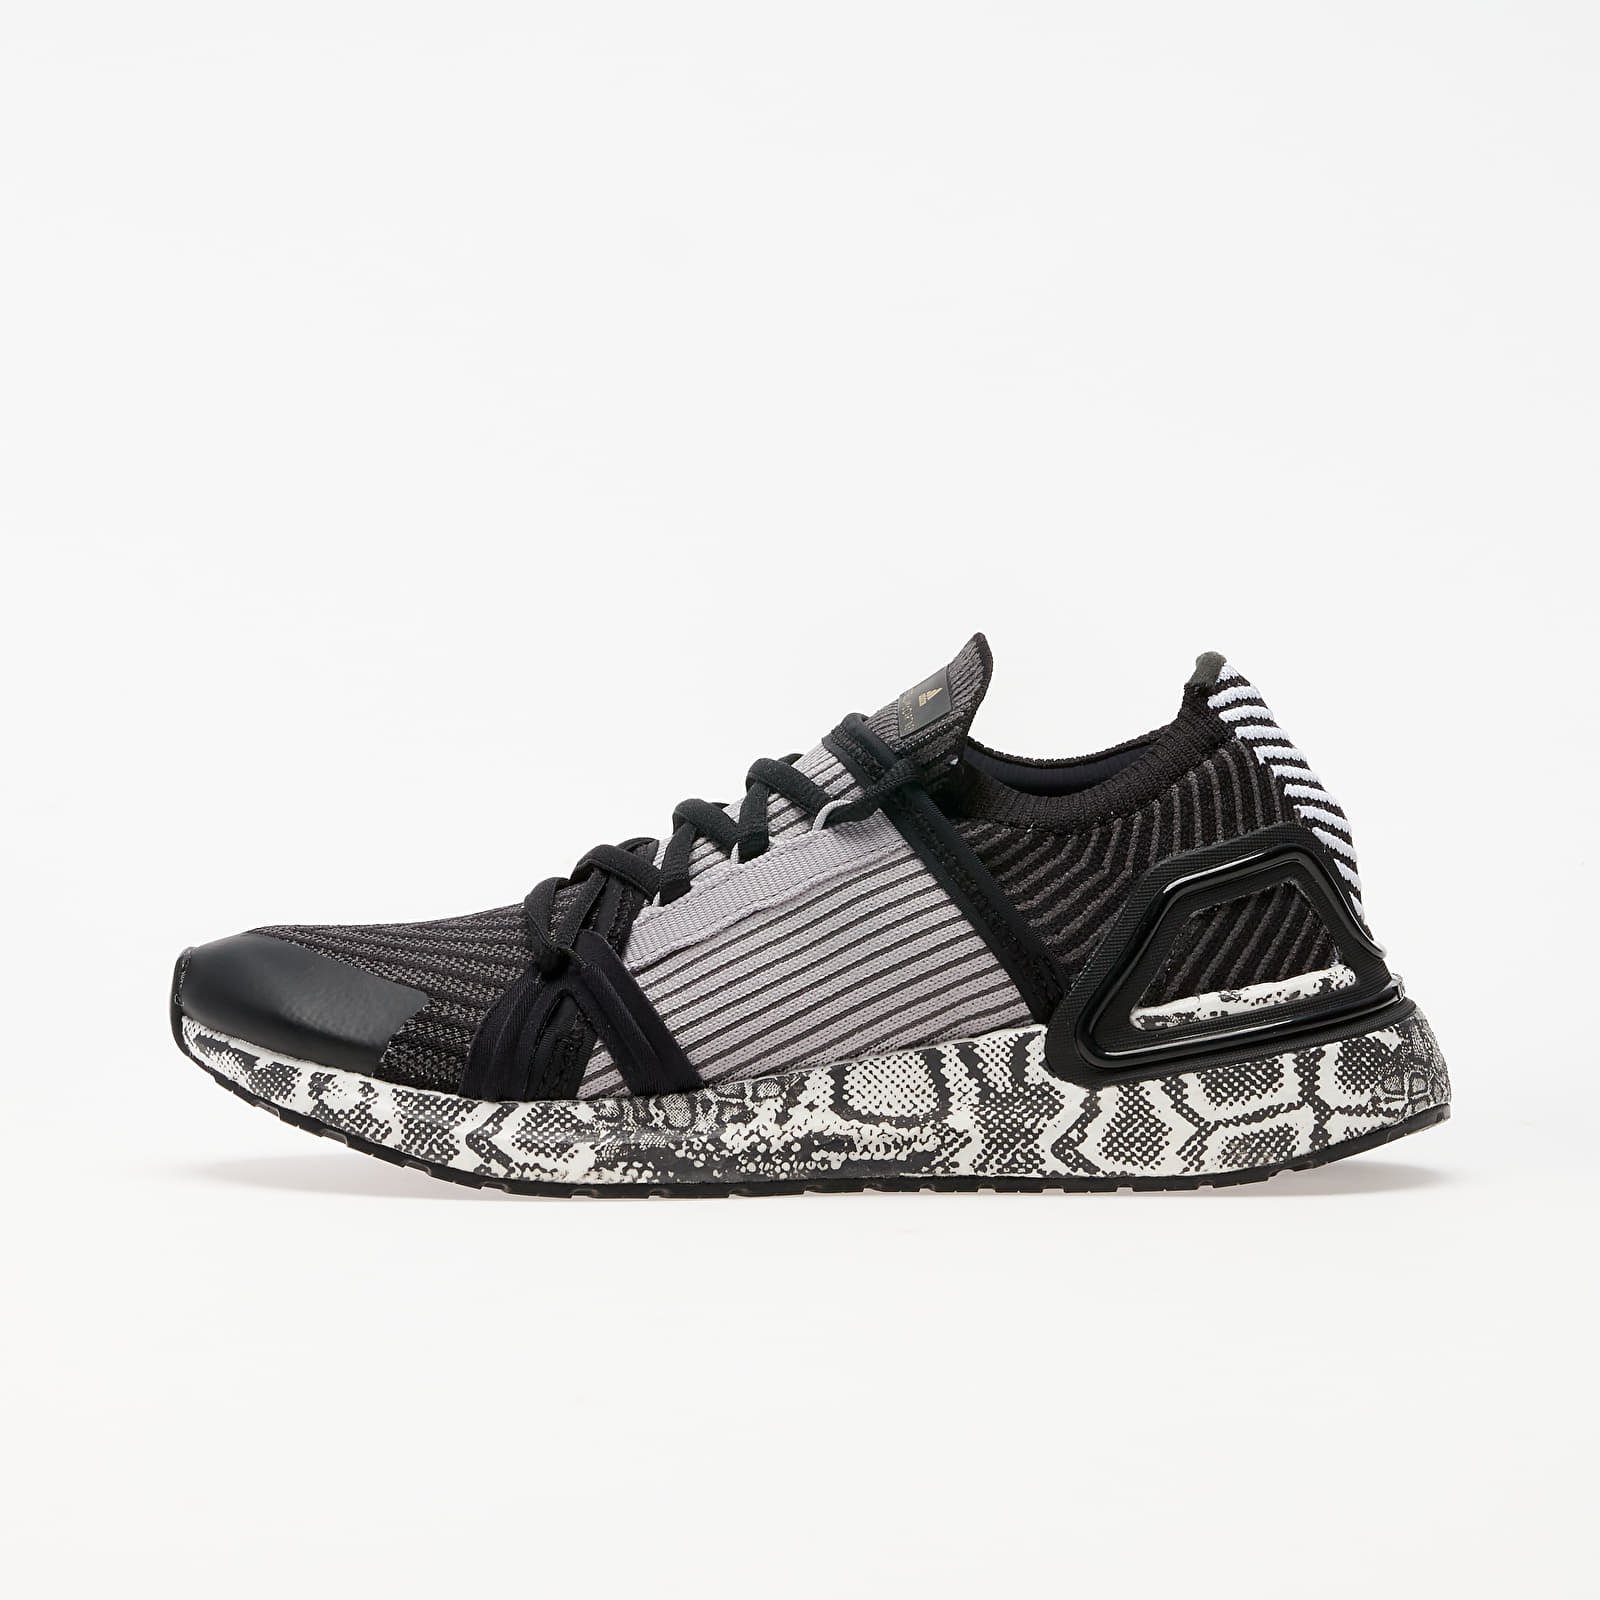 Women's shoes adidas x Stella McCartney UltraBOOST 20 Black White/ Black White/ Dg Solid Grey